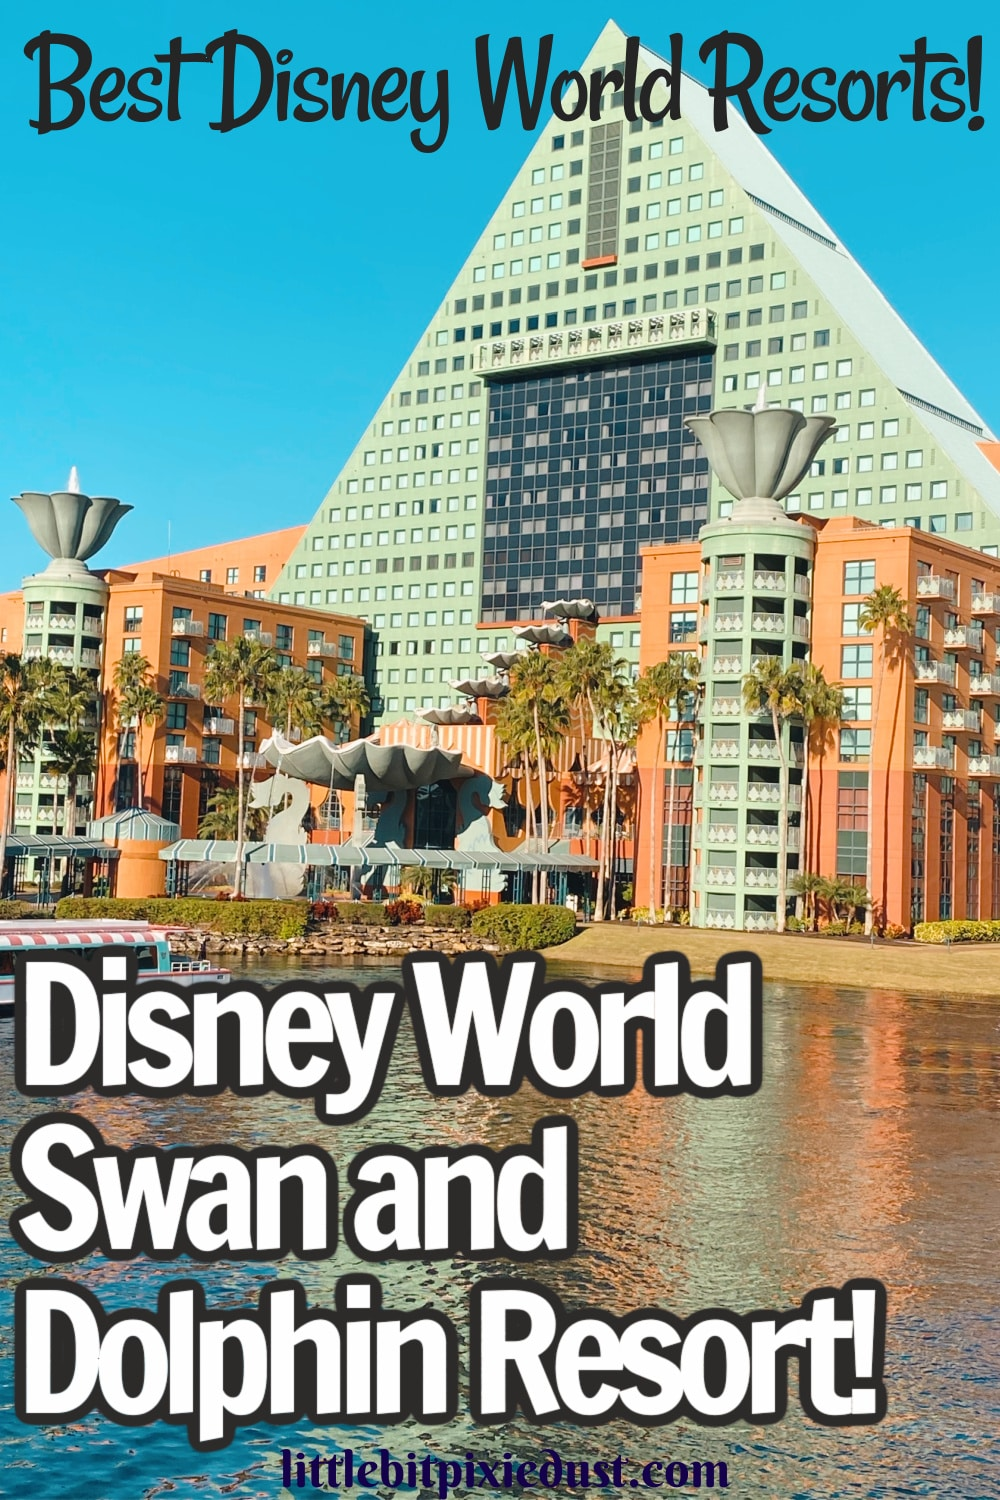 Disney Swan and Dolphin